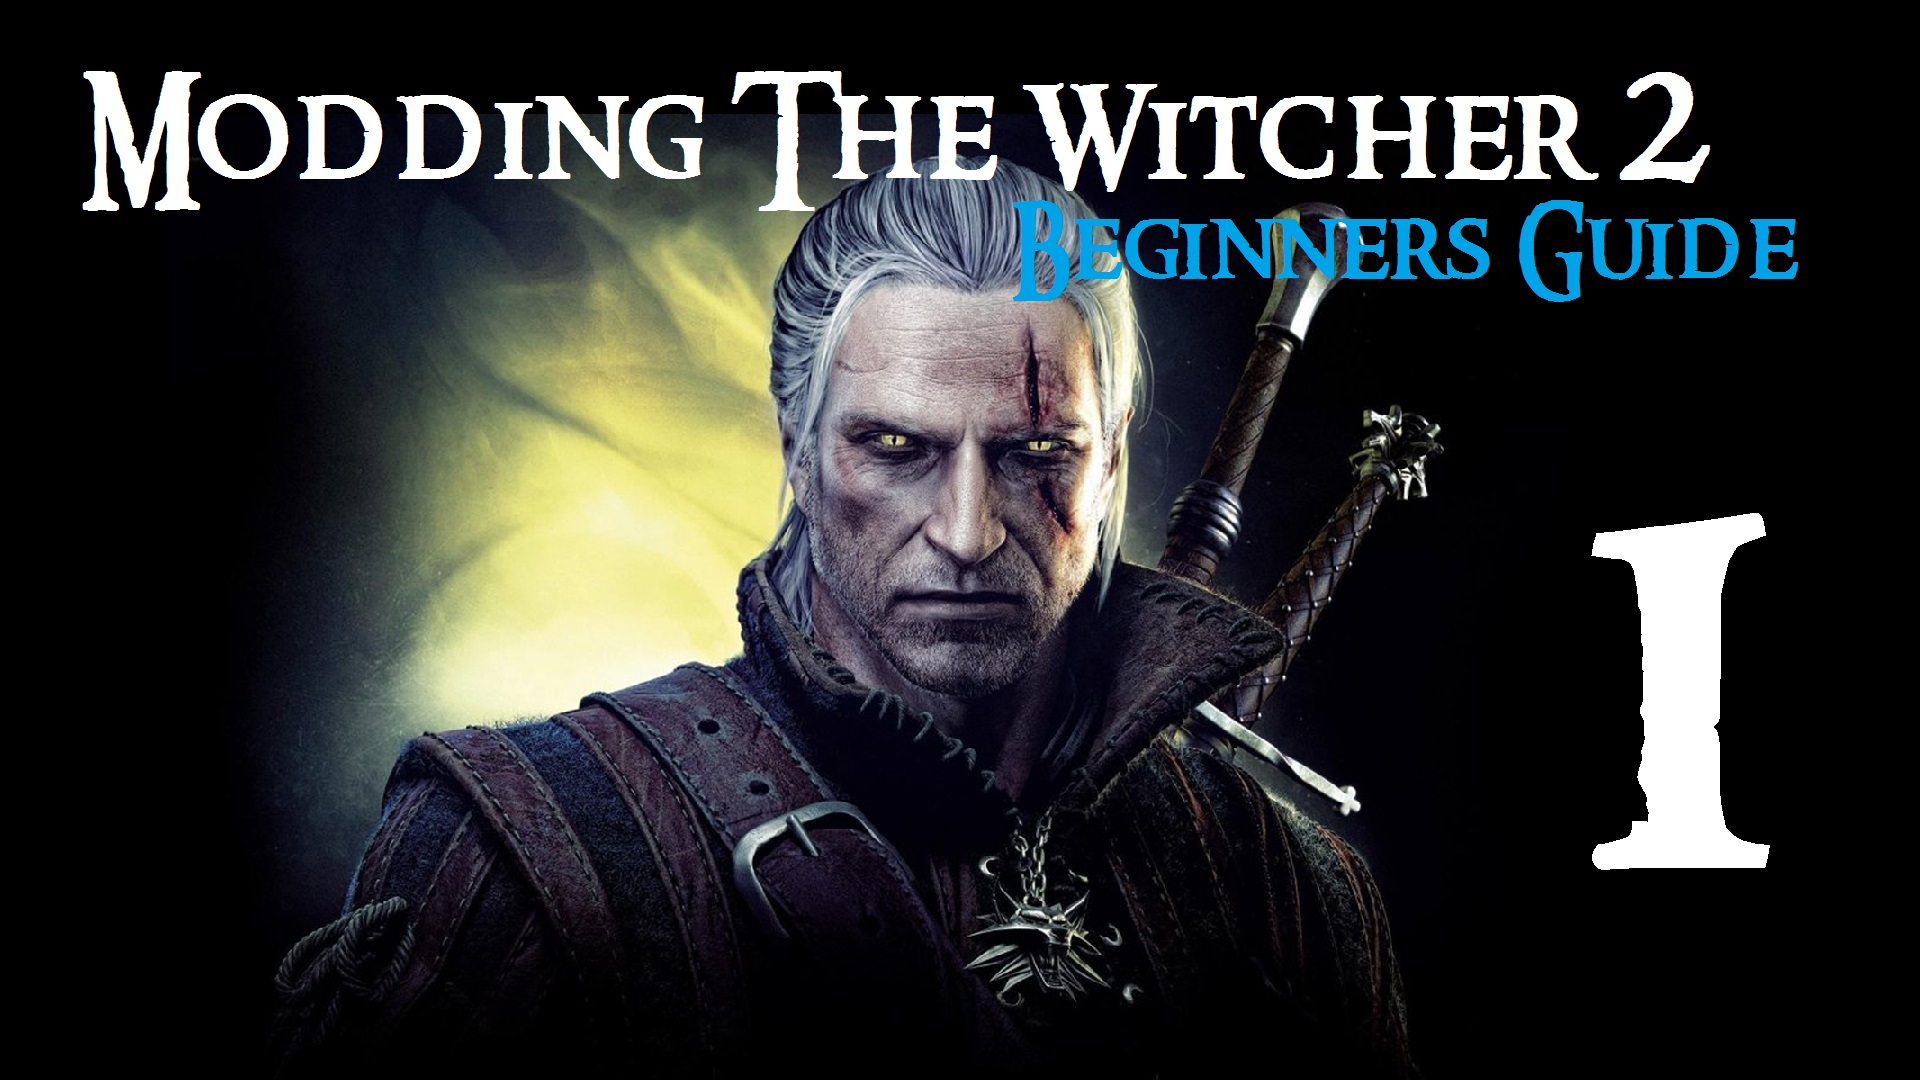 Modding The Witcher 2 1